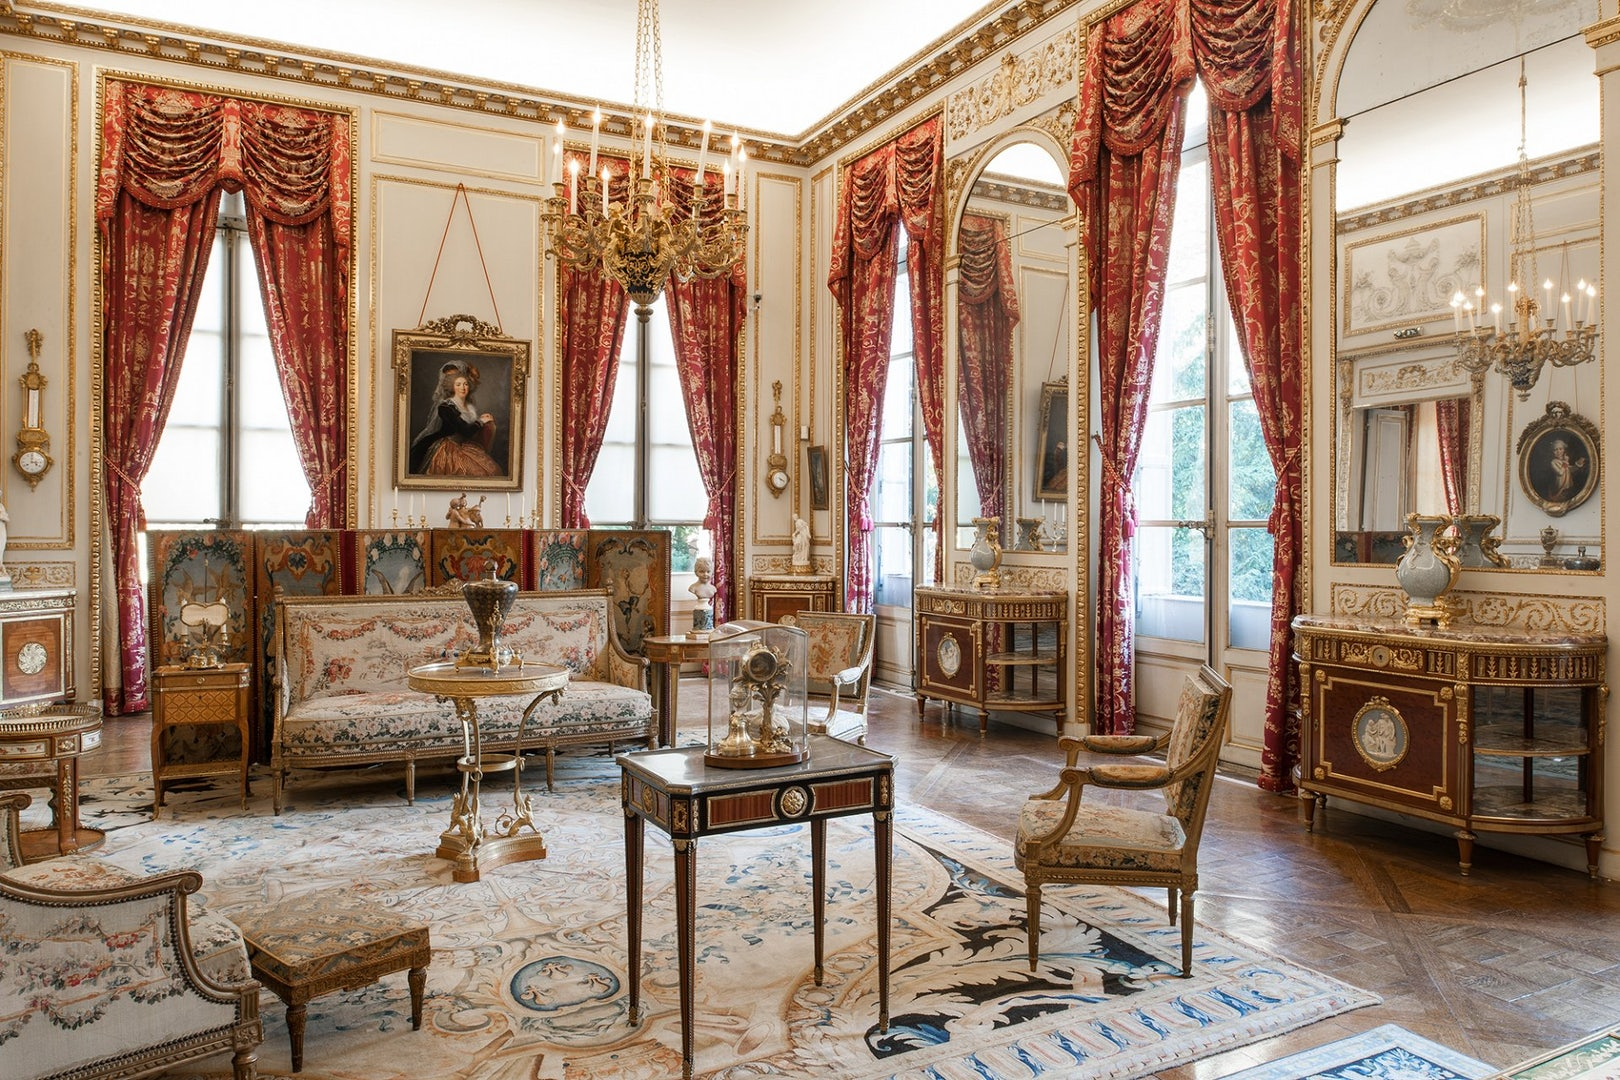 le grand salon at the Musée Nissim de Camondo